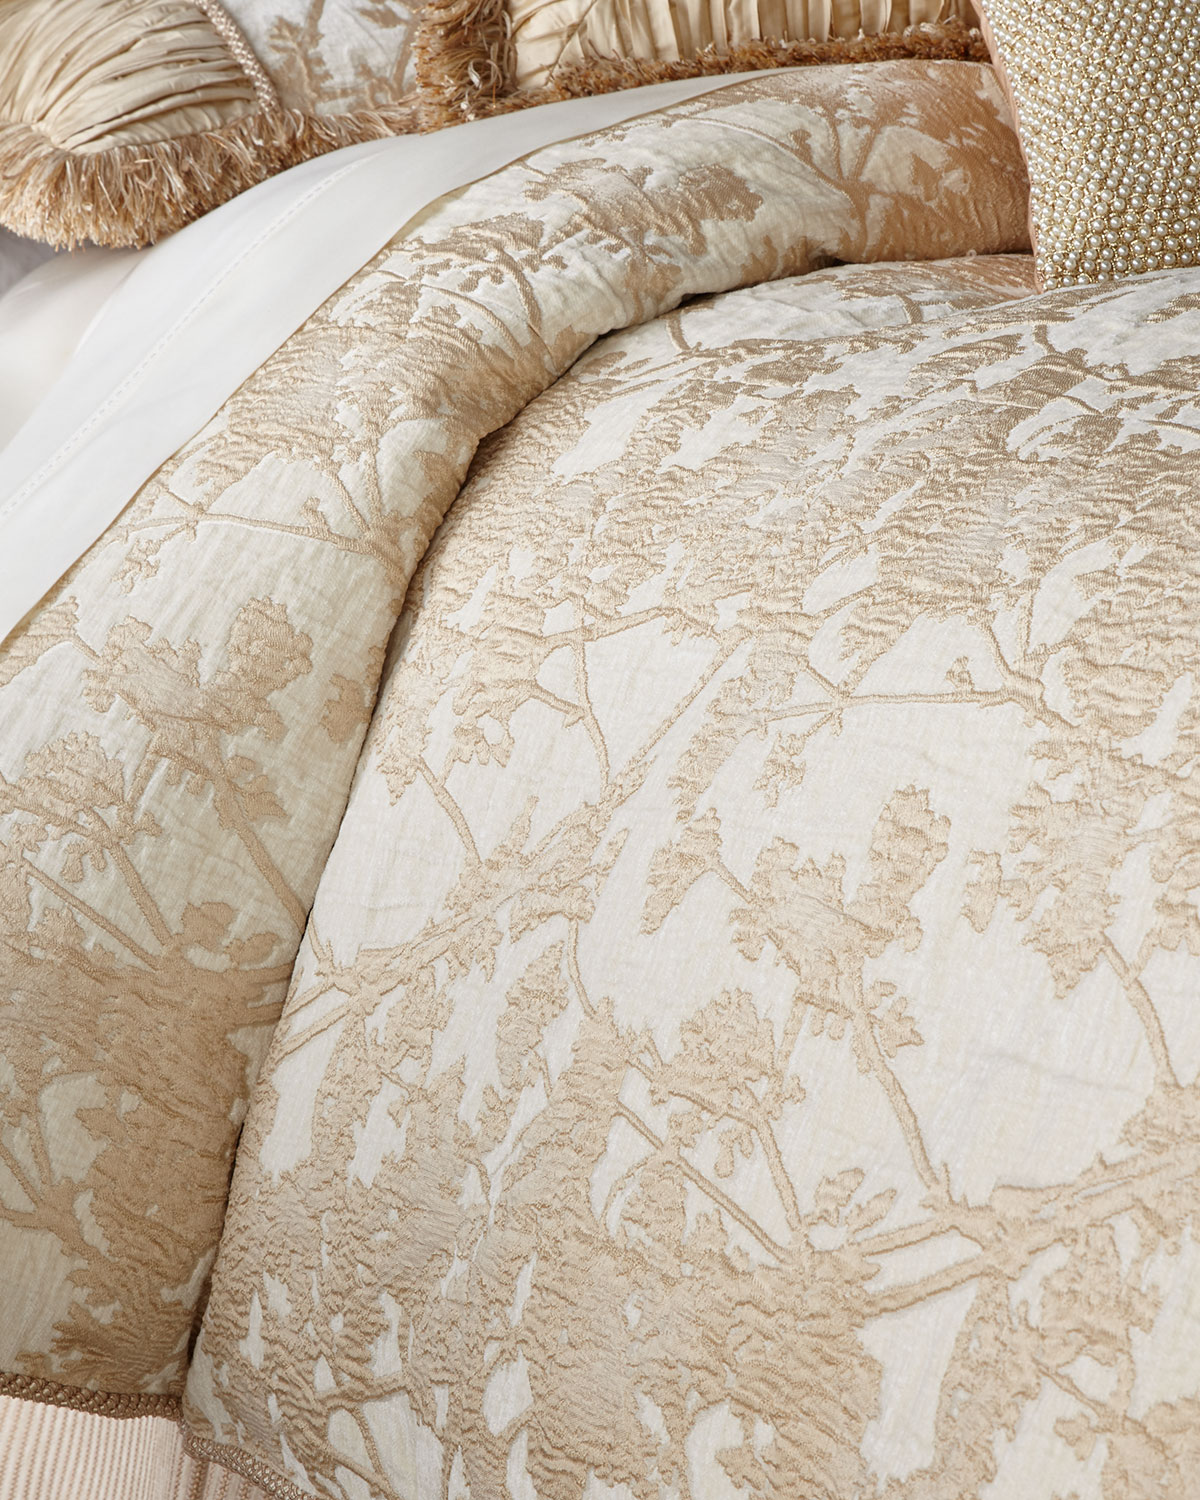 Dian Austin Couture Home Fauna Bedding & Matching Items ...